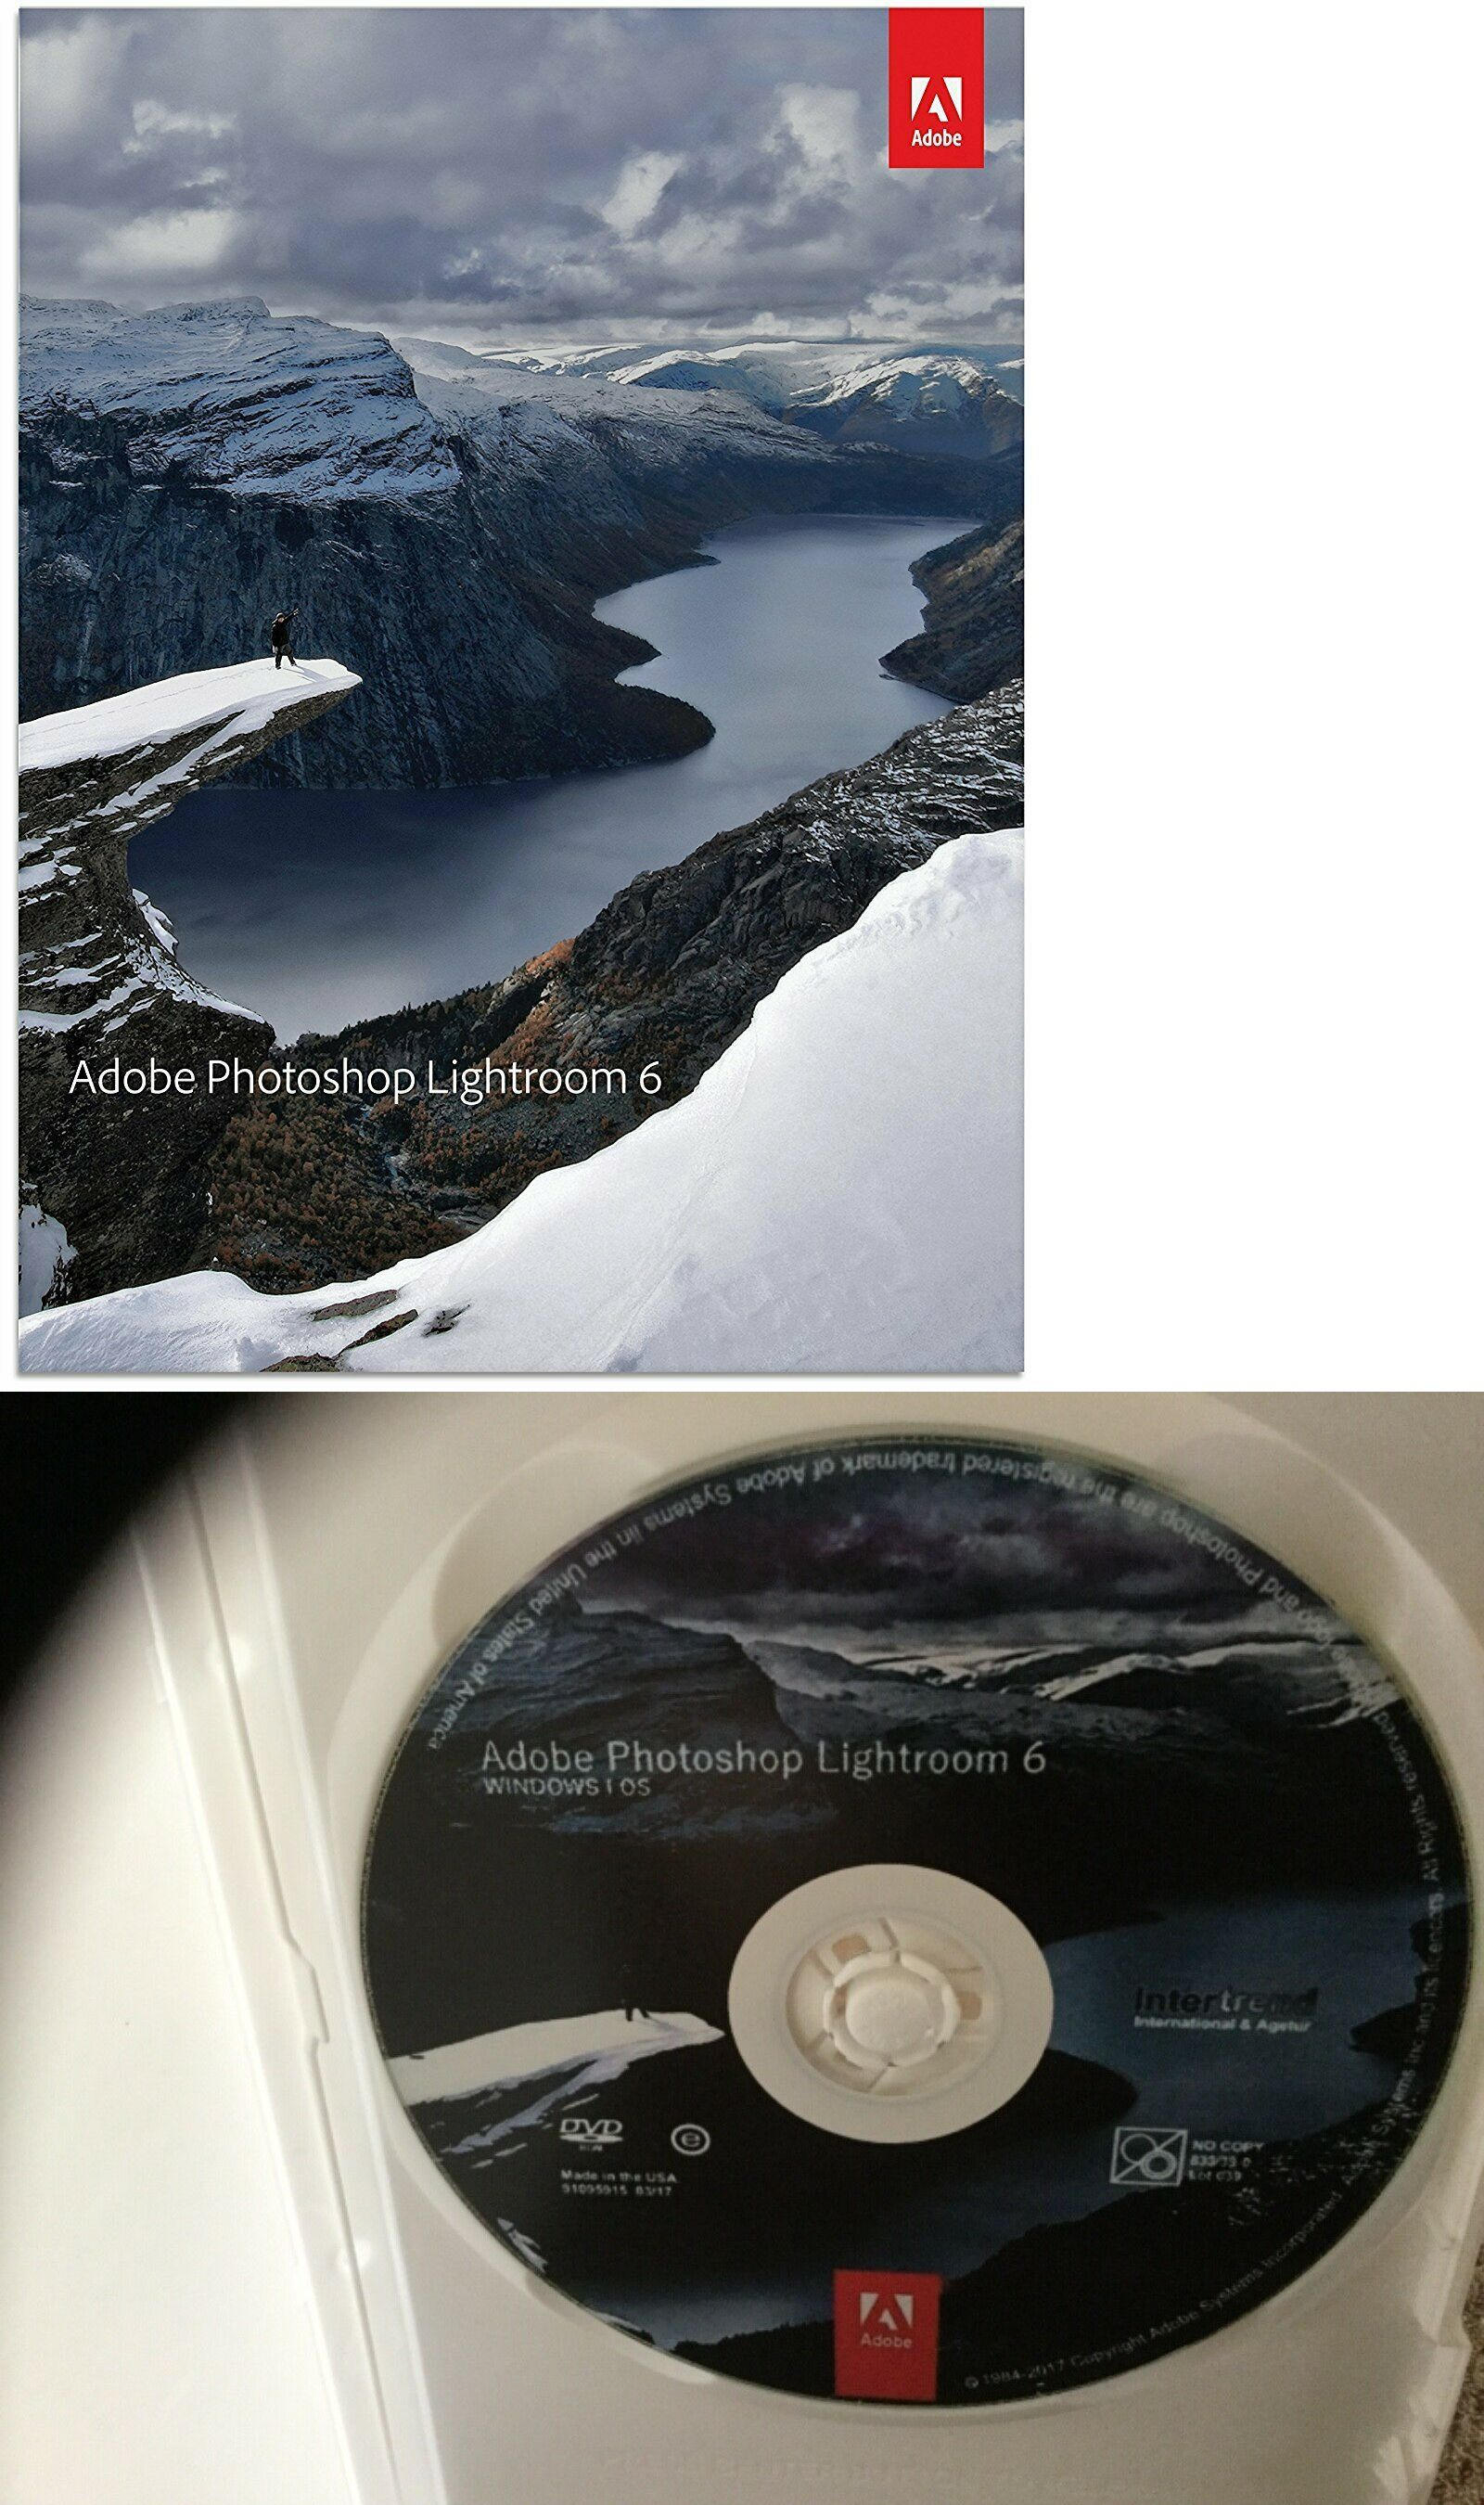 Wholesale Lots 159260 Photoshop Lightroom 6 Dvd Buy It Now